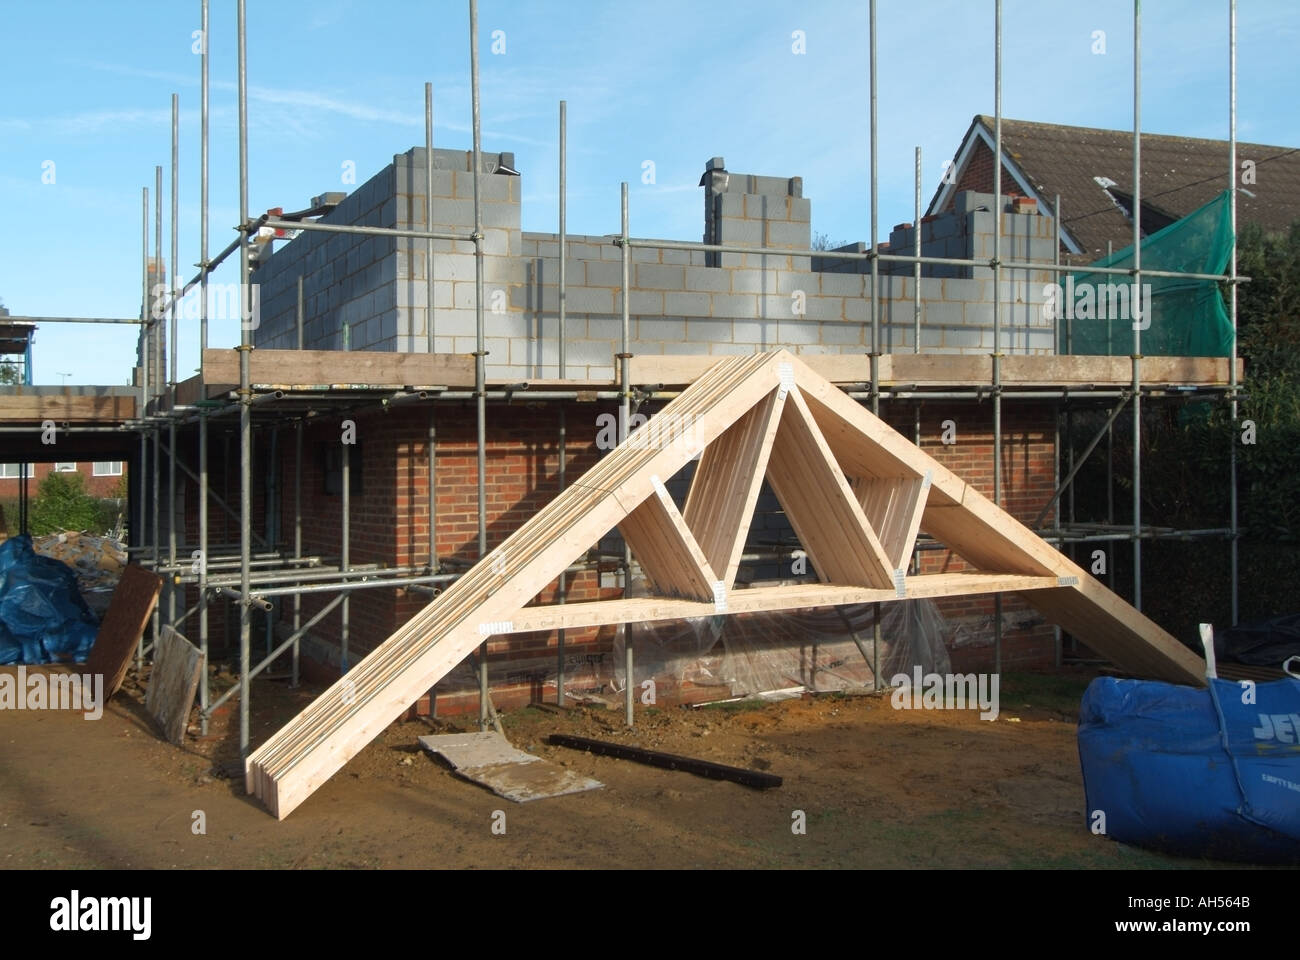 House building site prefabricated timber roof trusses for House roof construction